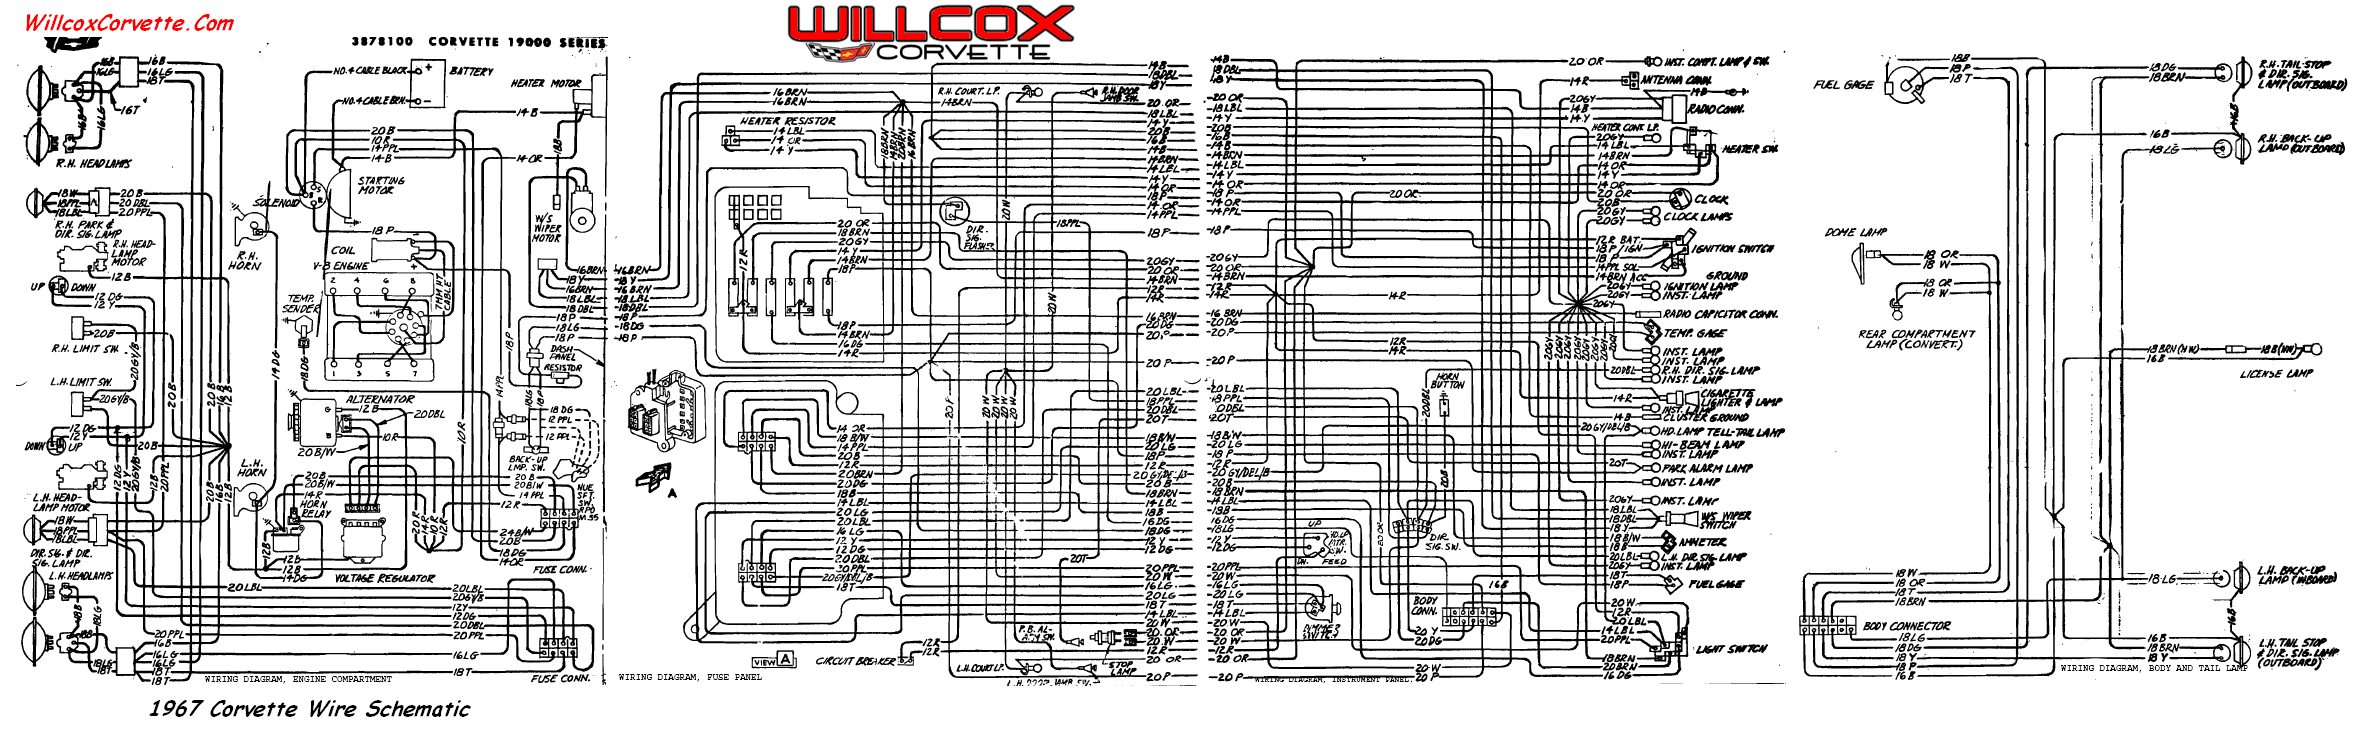 1966 corvette wiring diagram 1966 wiring diagrams online 1967 corvette wiring diagram tracer schematic willcox corvette